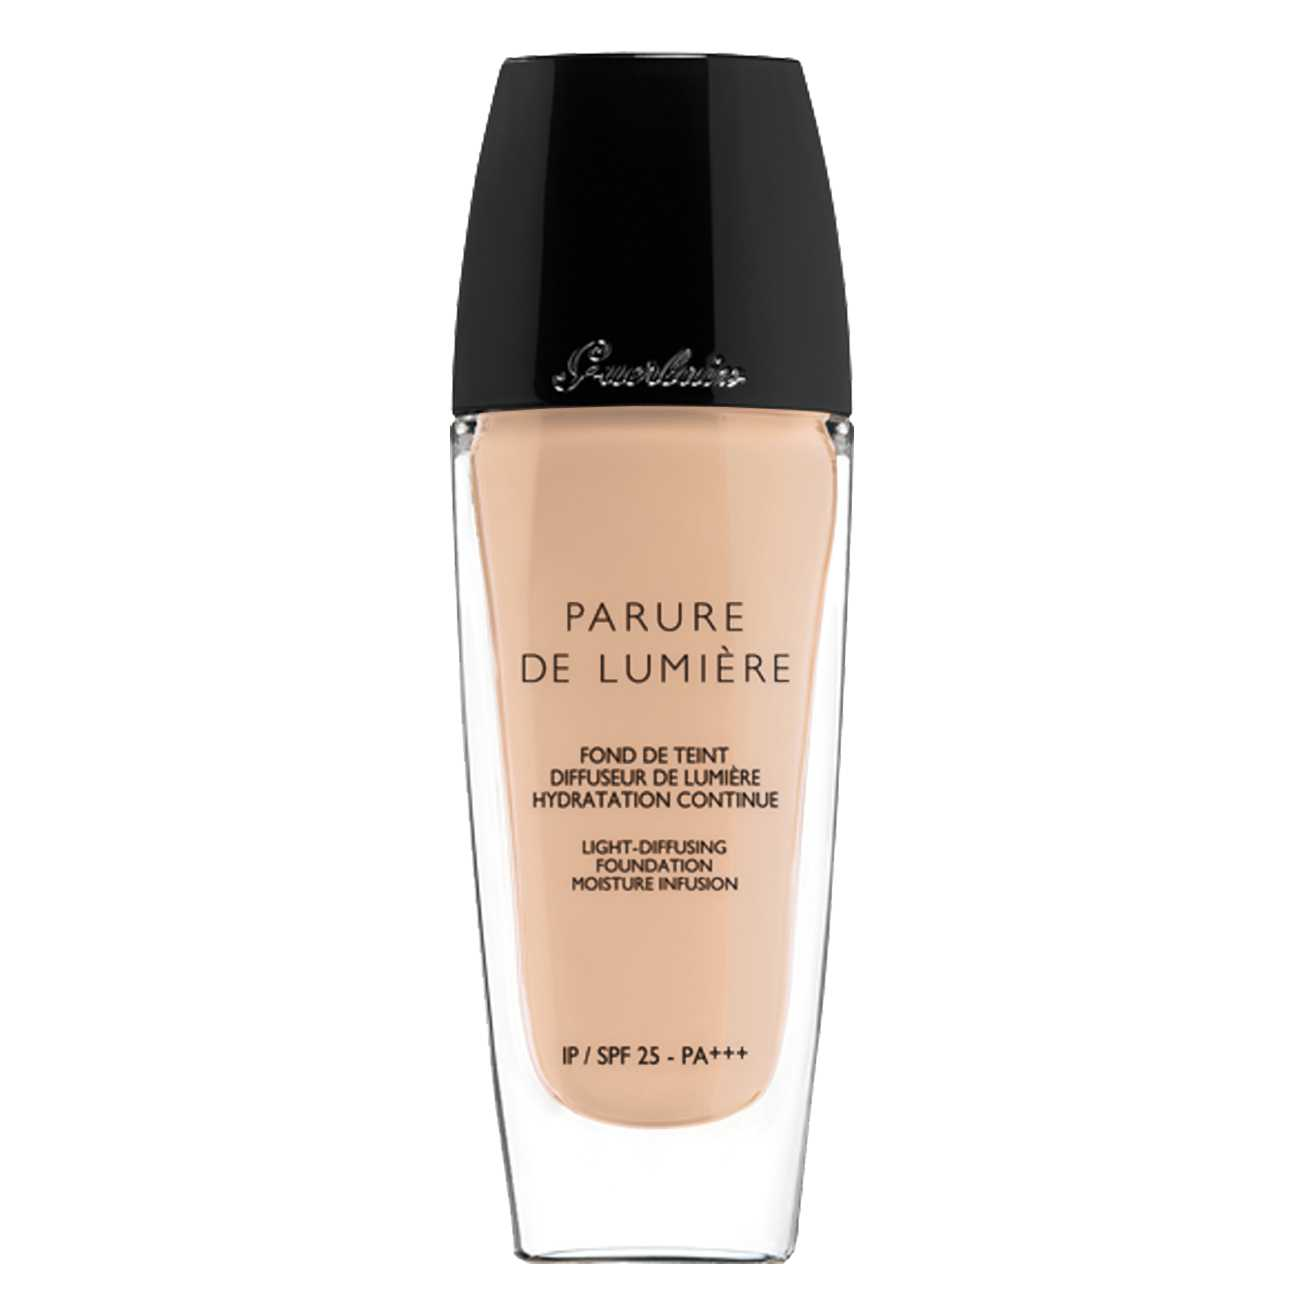 PARURE DE LUMIERE 30 ML Beige Clair 2 imagine produs